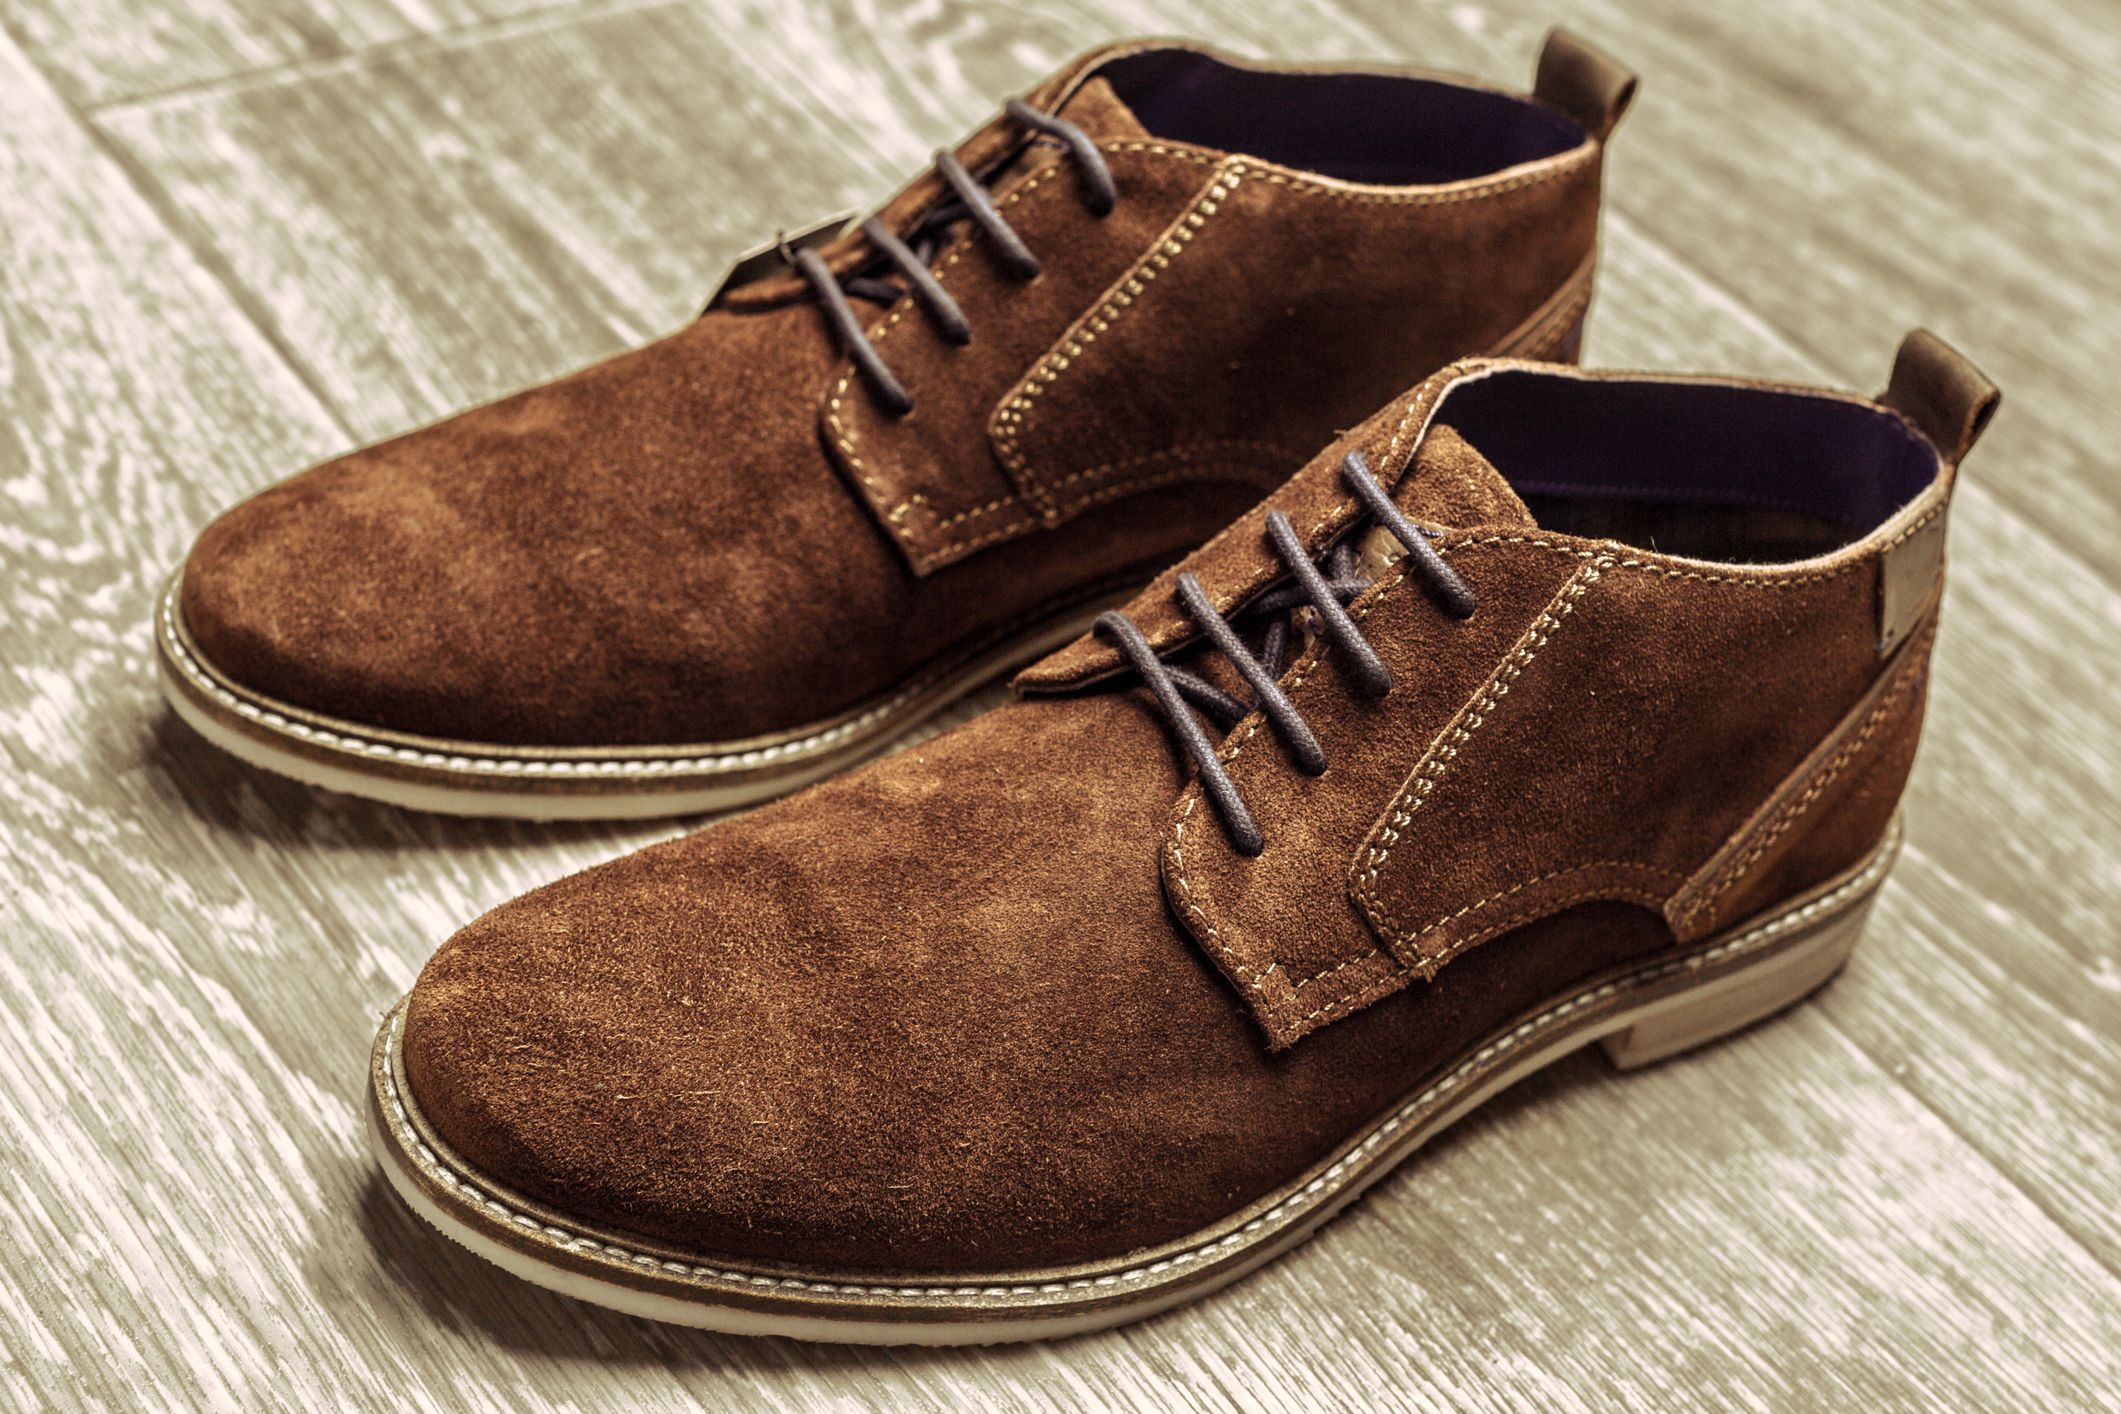 How to Clean Suede Without Ruining It